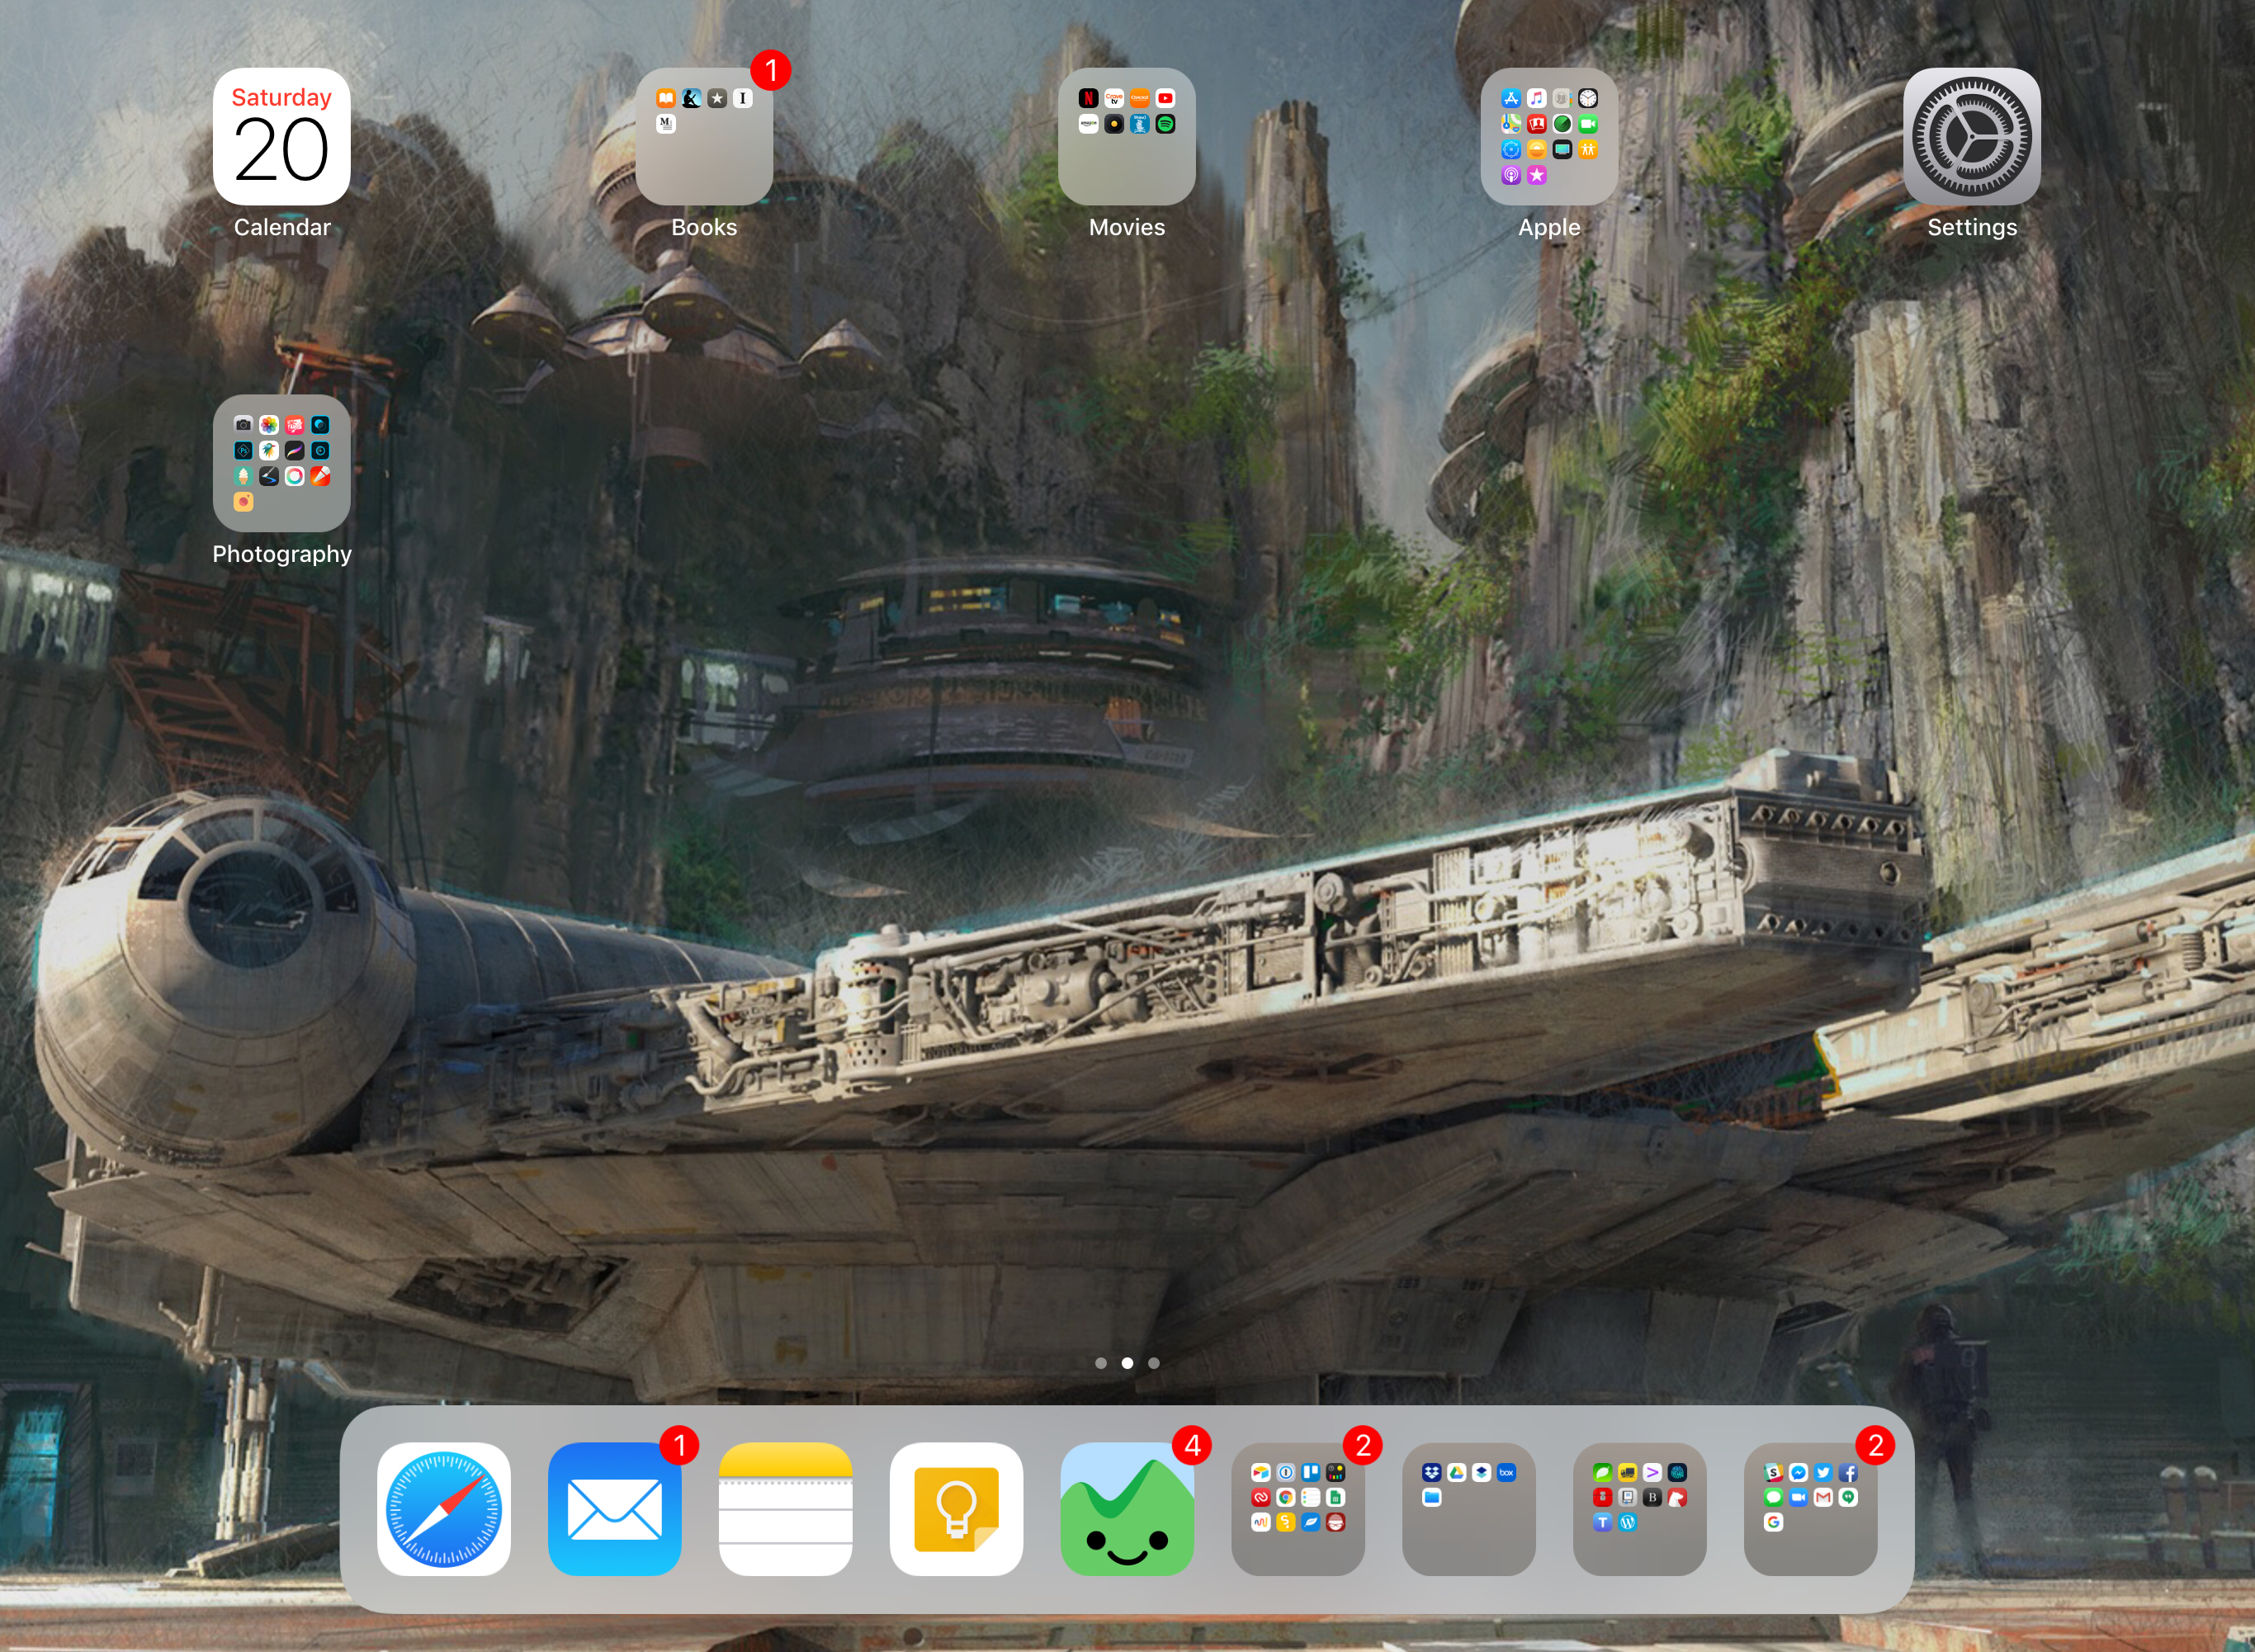 iOS 11 and the dock